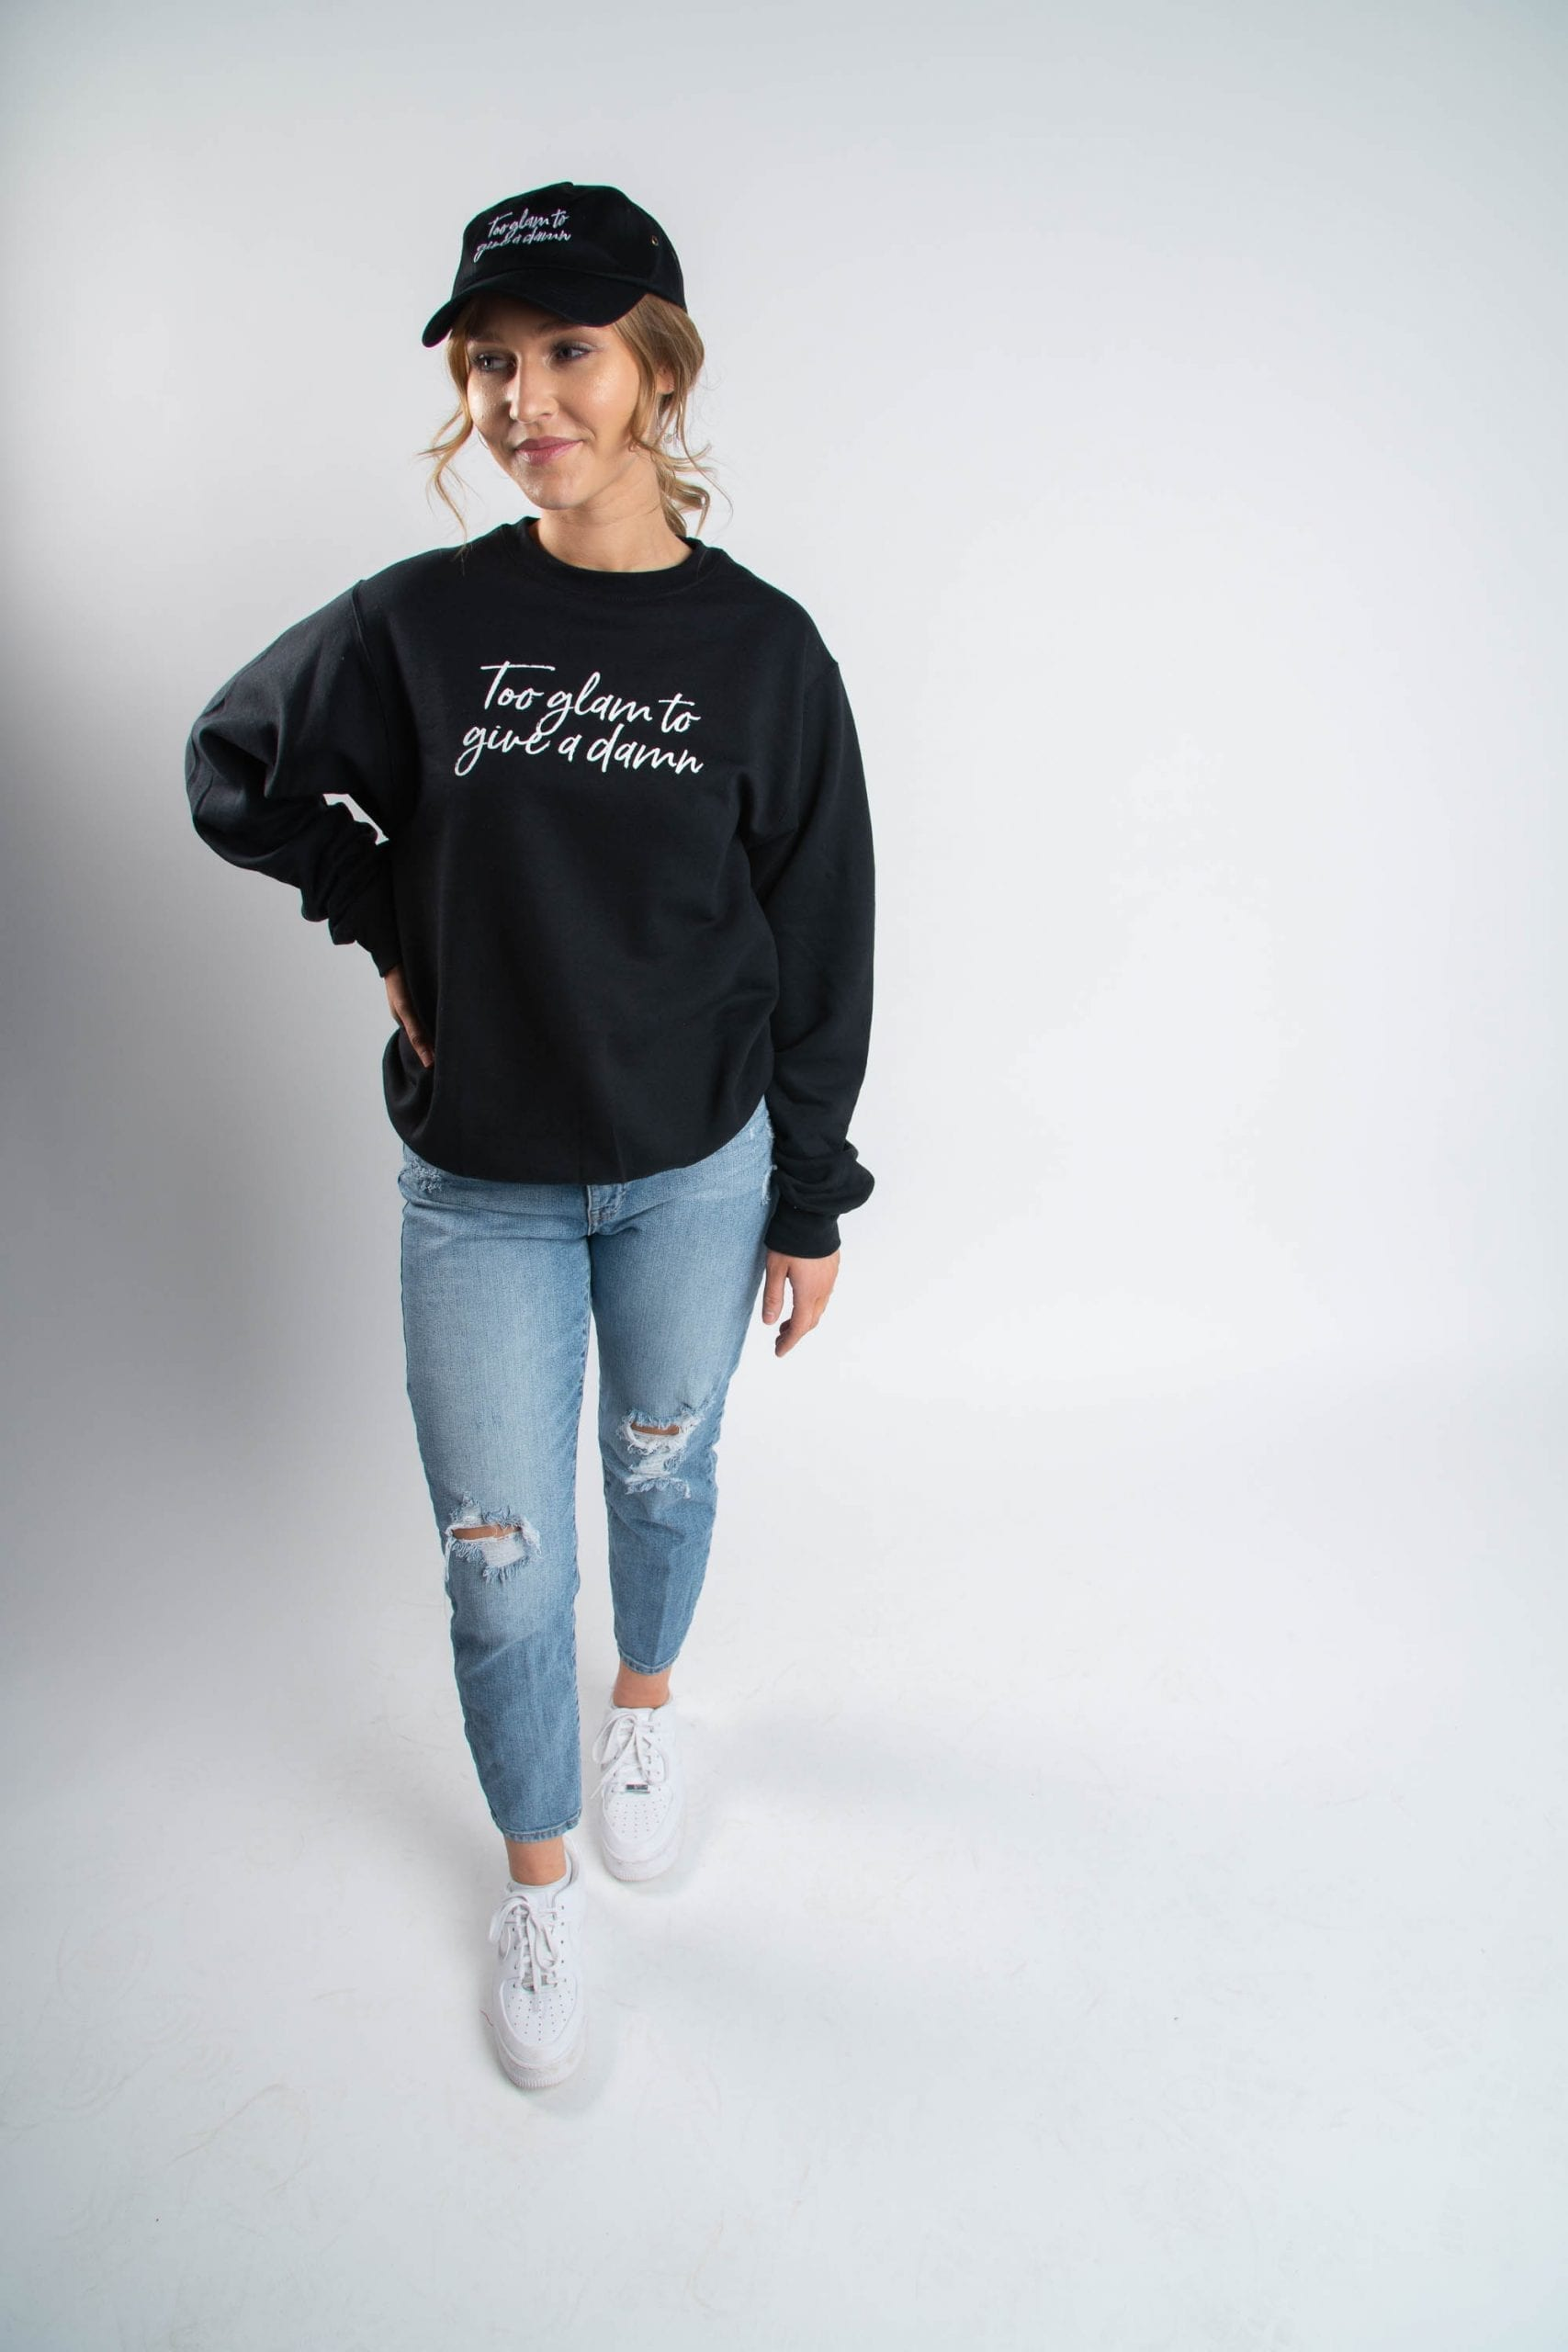 too-glam-to-give-a-damn-black-crewneckdsc00295